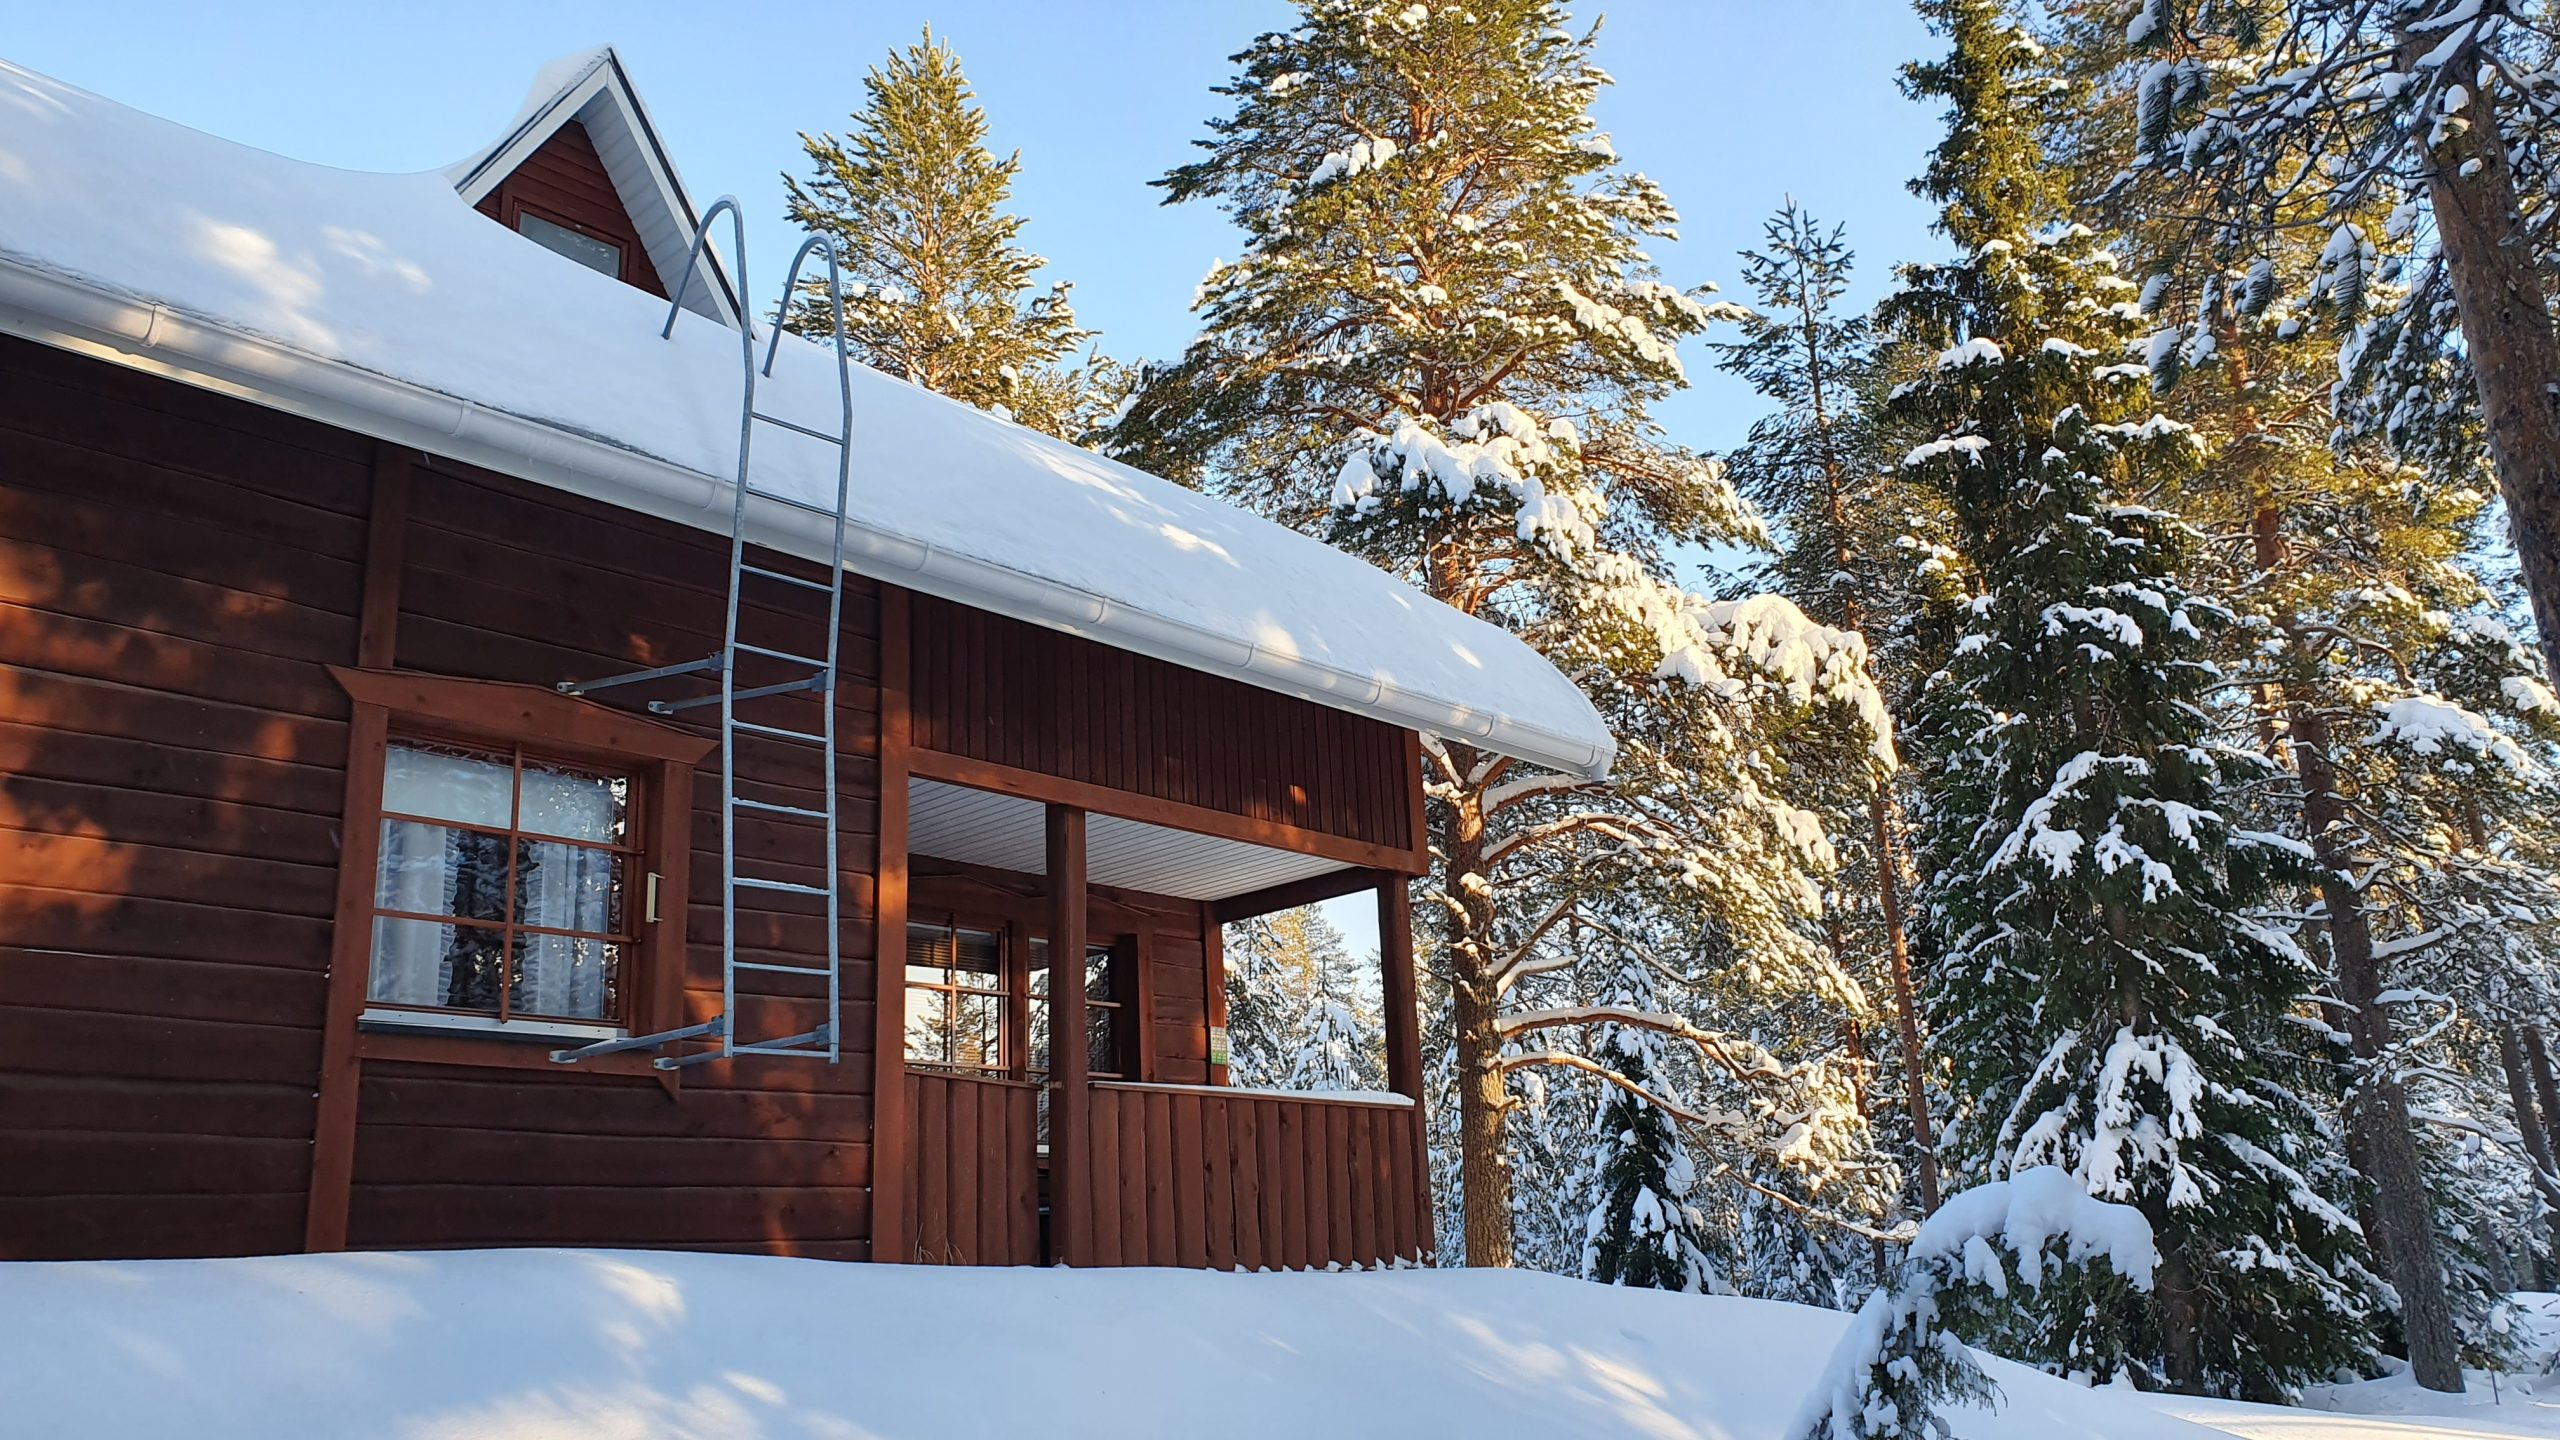 Kuutti Chalet and beautiful snowy trees